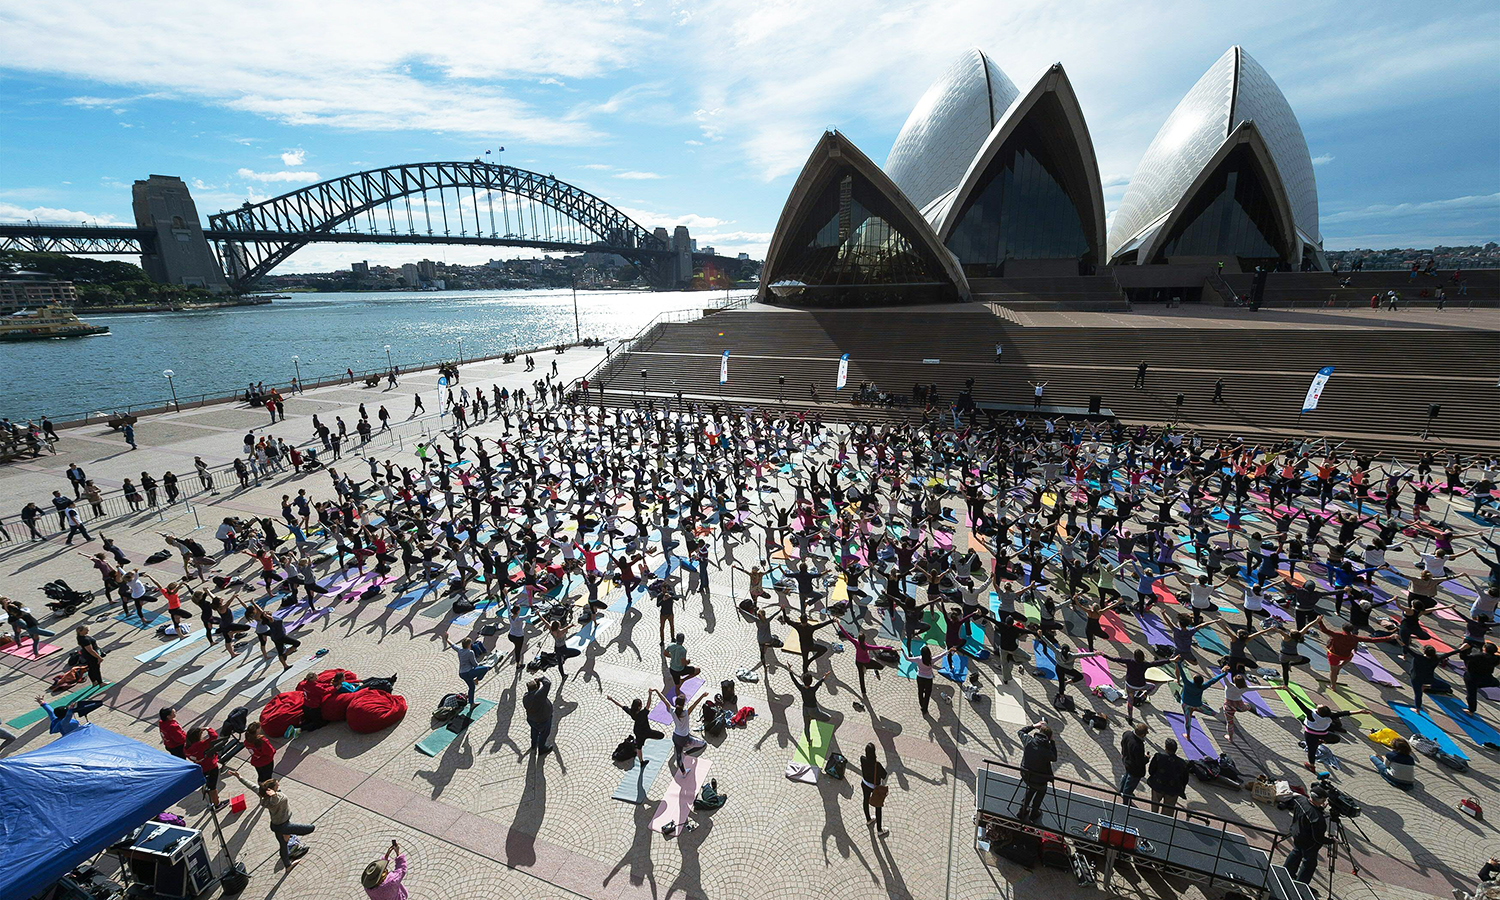 Sydneysiders enagage in a yoga event in front of the Australia's iconic landmark Opera House in Sydney. Hundreds of Yoga lovers gathered at Opera House to mark the International Yoga Day. AFP